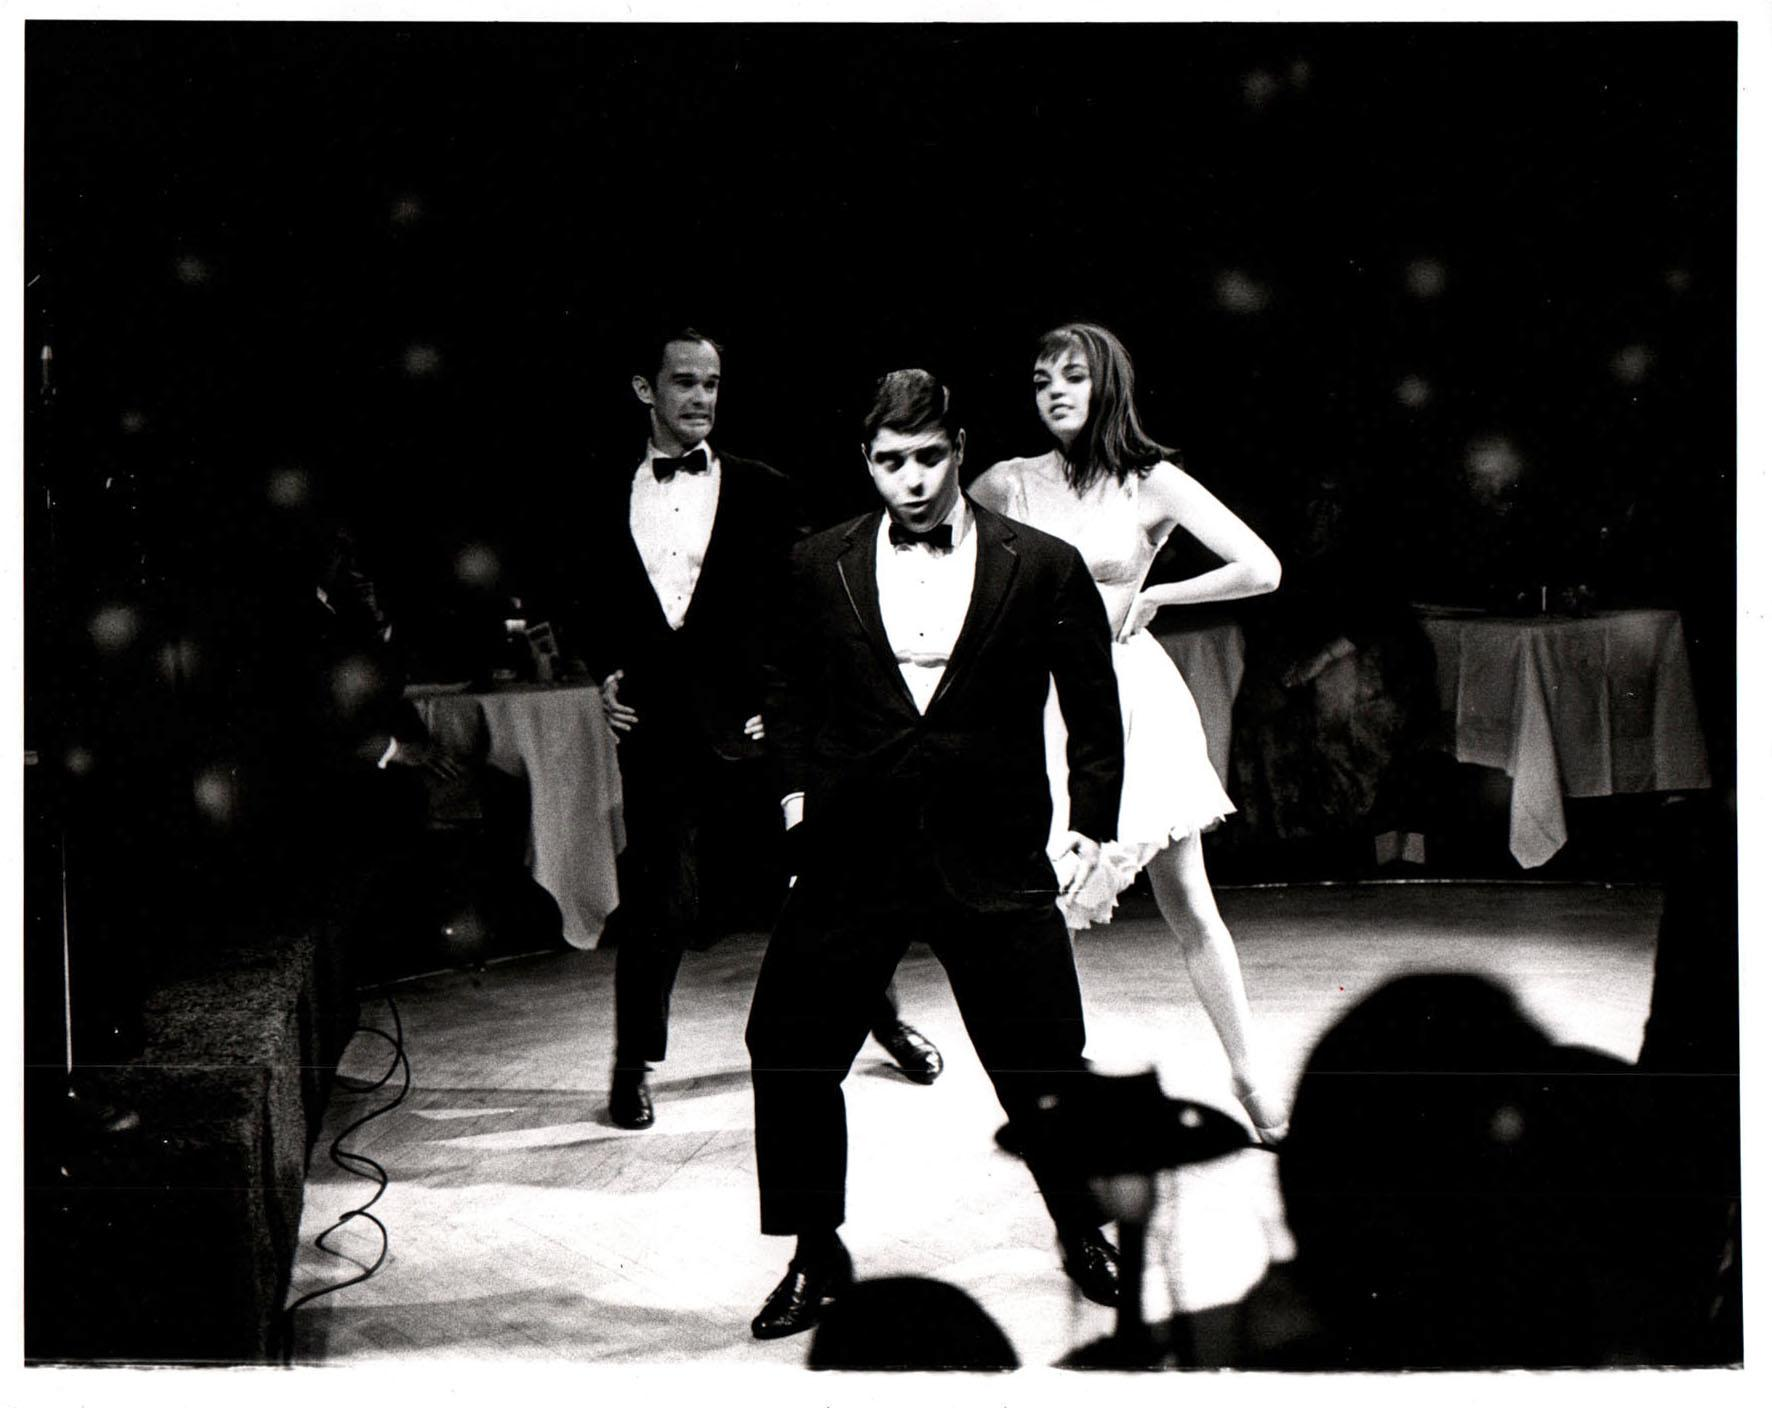 Liza Minelli, cabaret act at the Persian Room at the Plaza Hotel in NYC